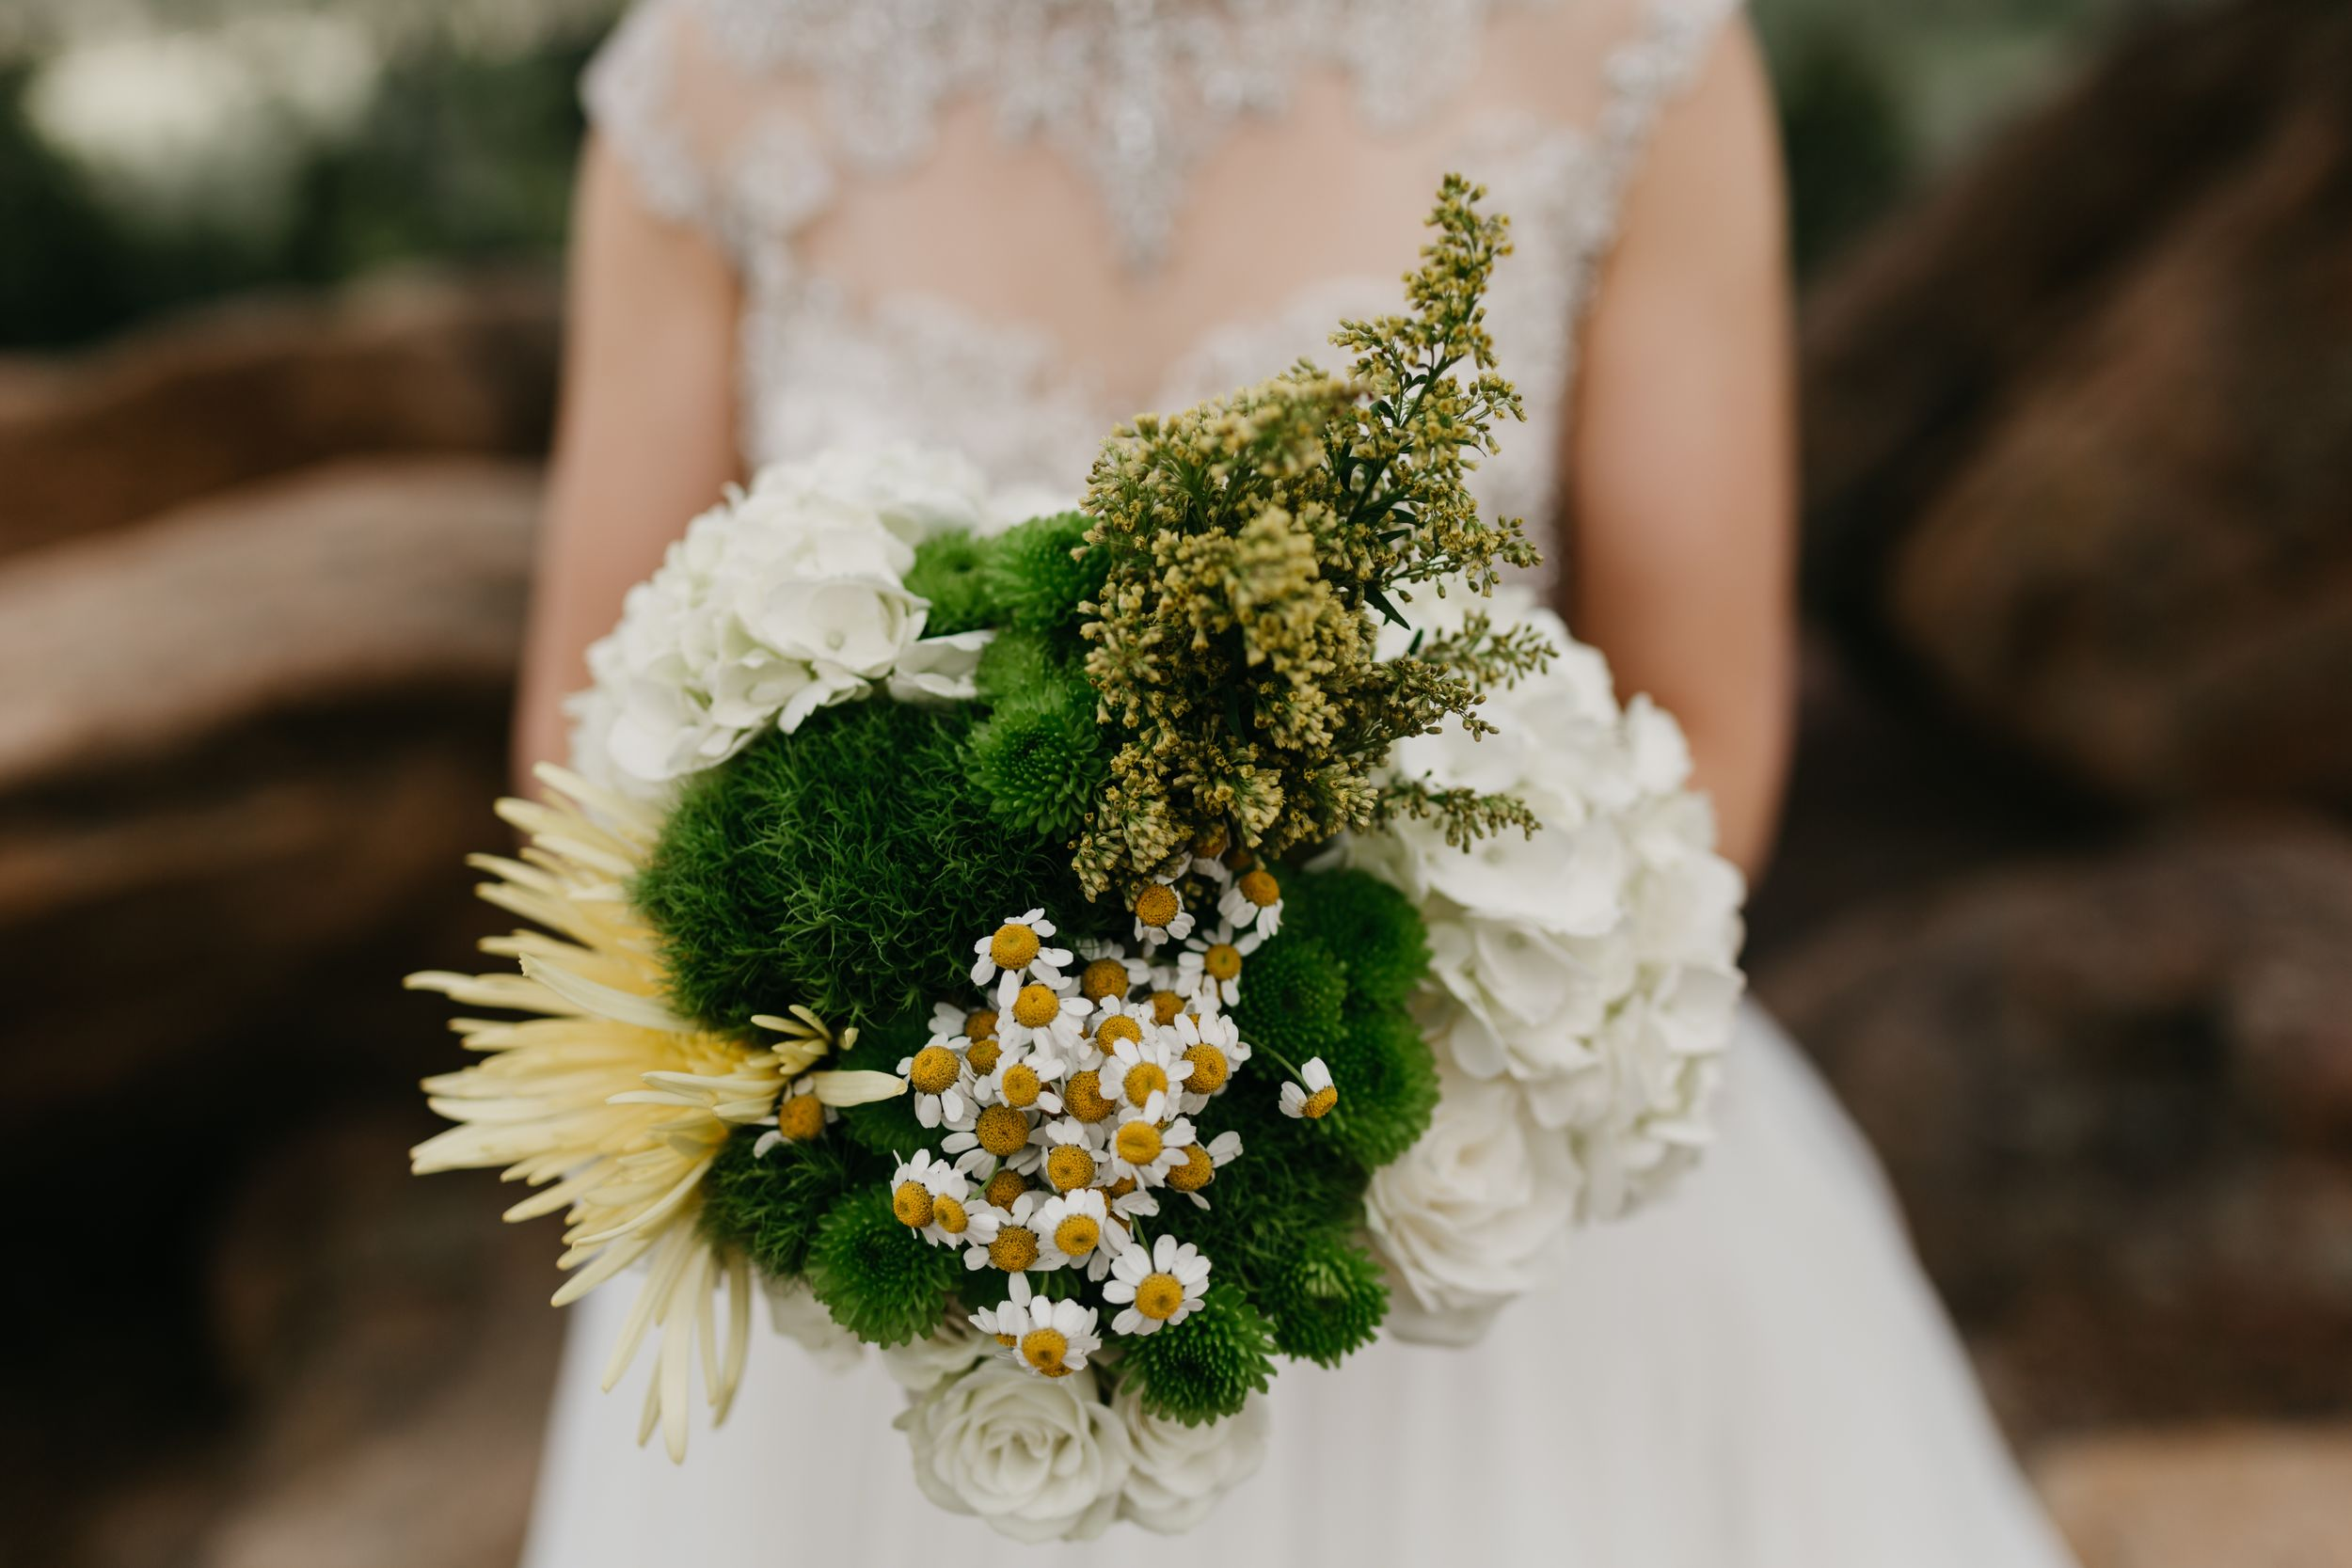 bouquet, floral, rmnp, ymca, ceremony, photography, colorado, estes park, forest wedding, classy, timeless